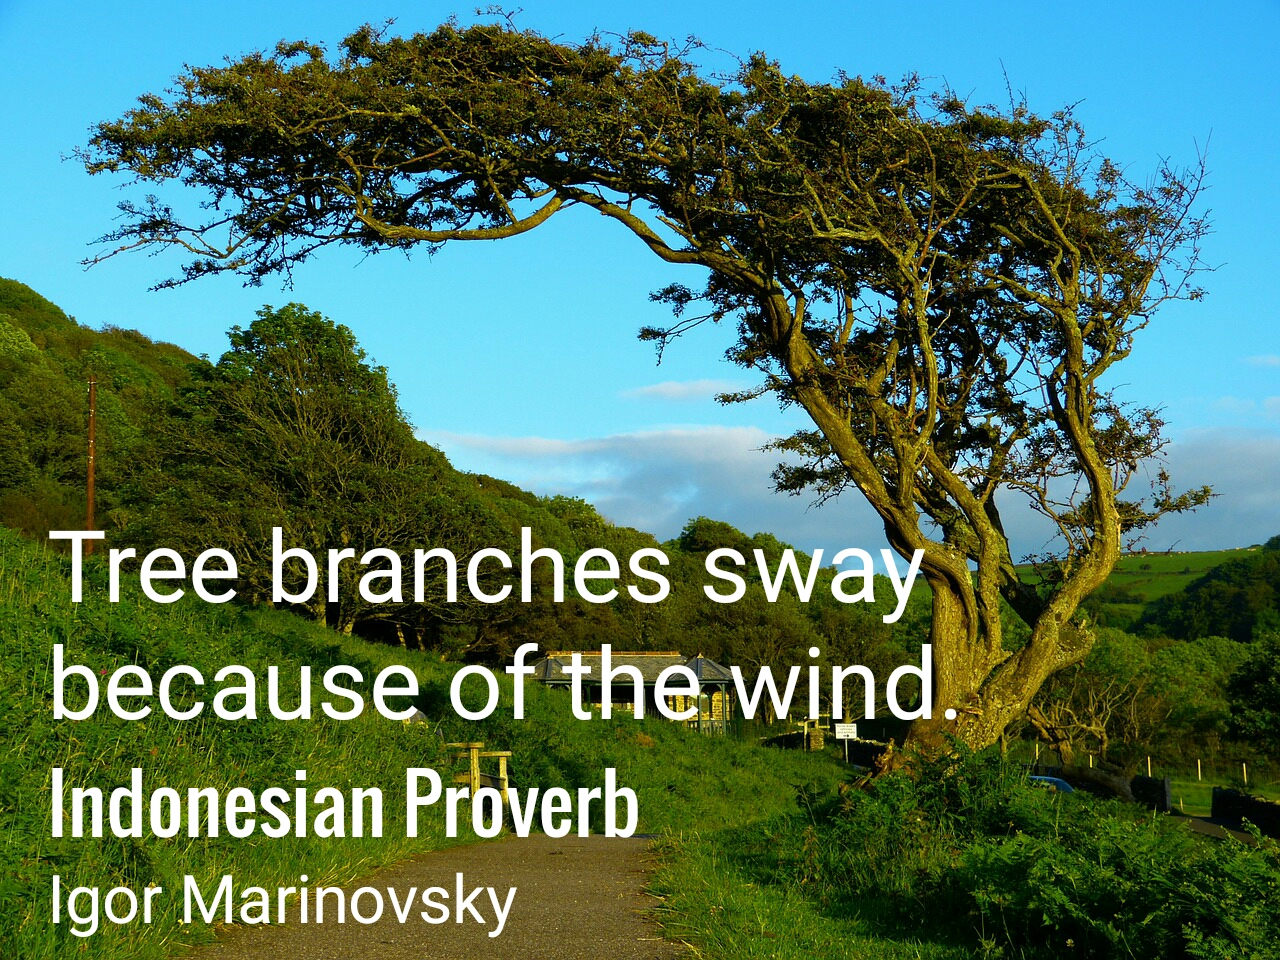 Tree branches sway Because of the wind.